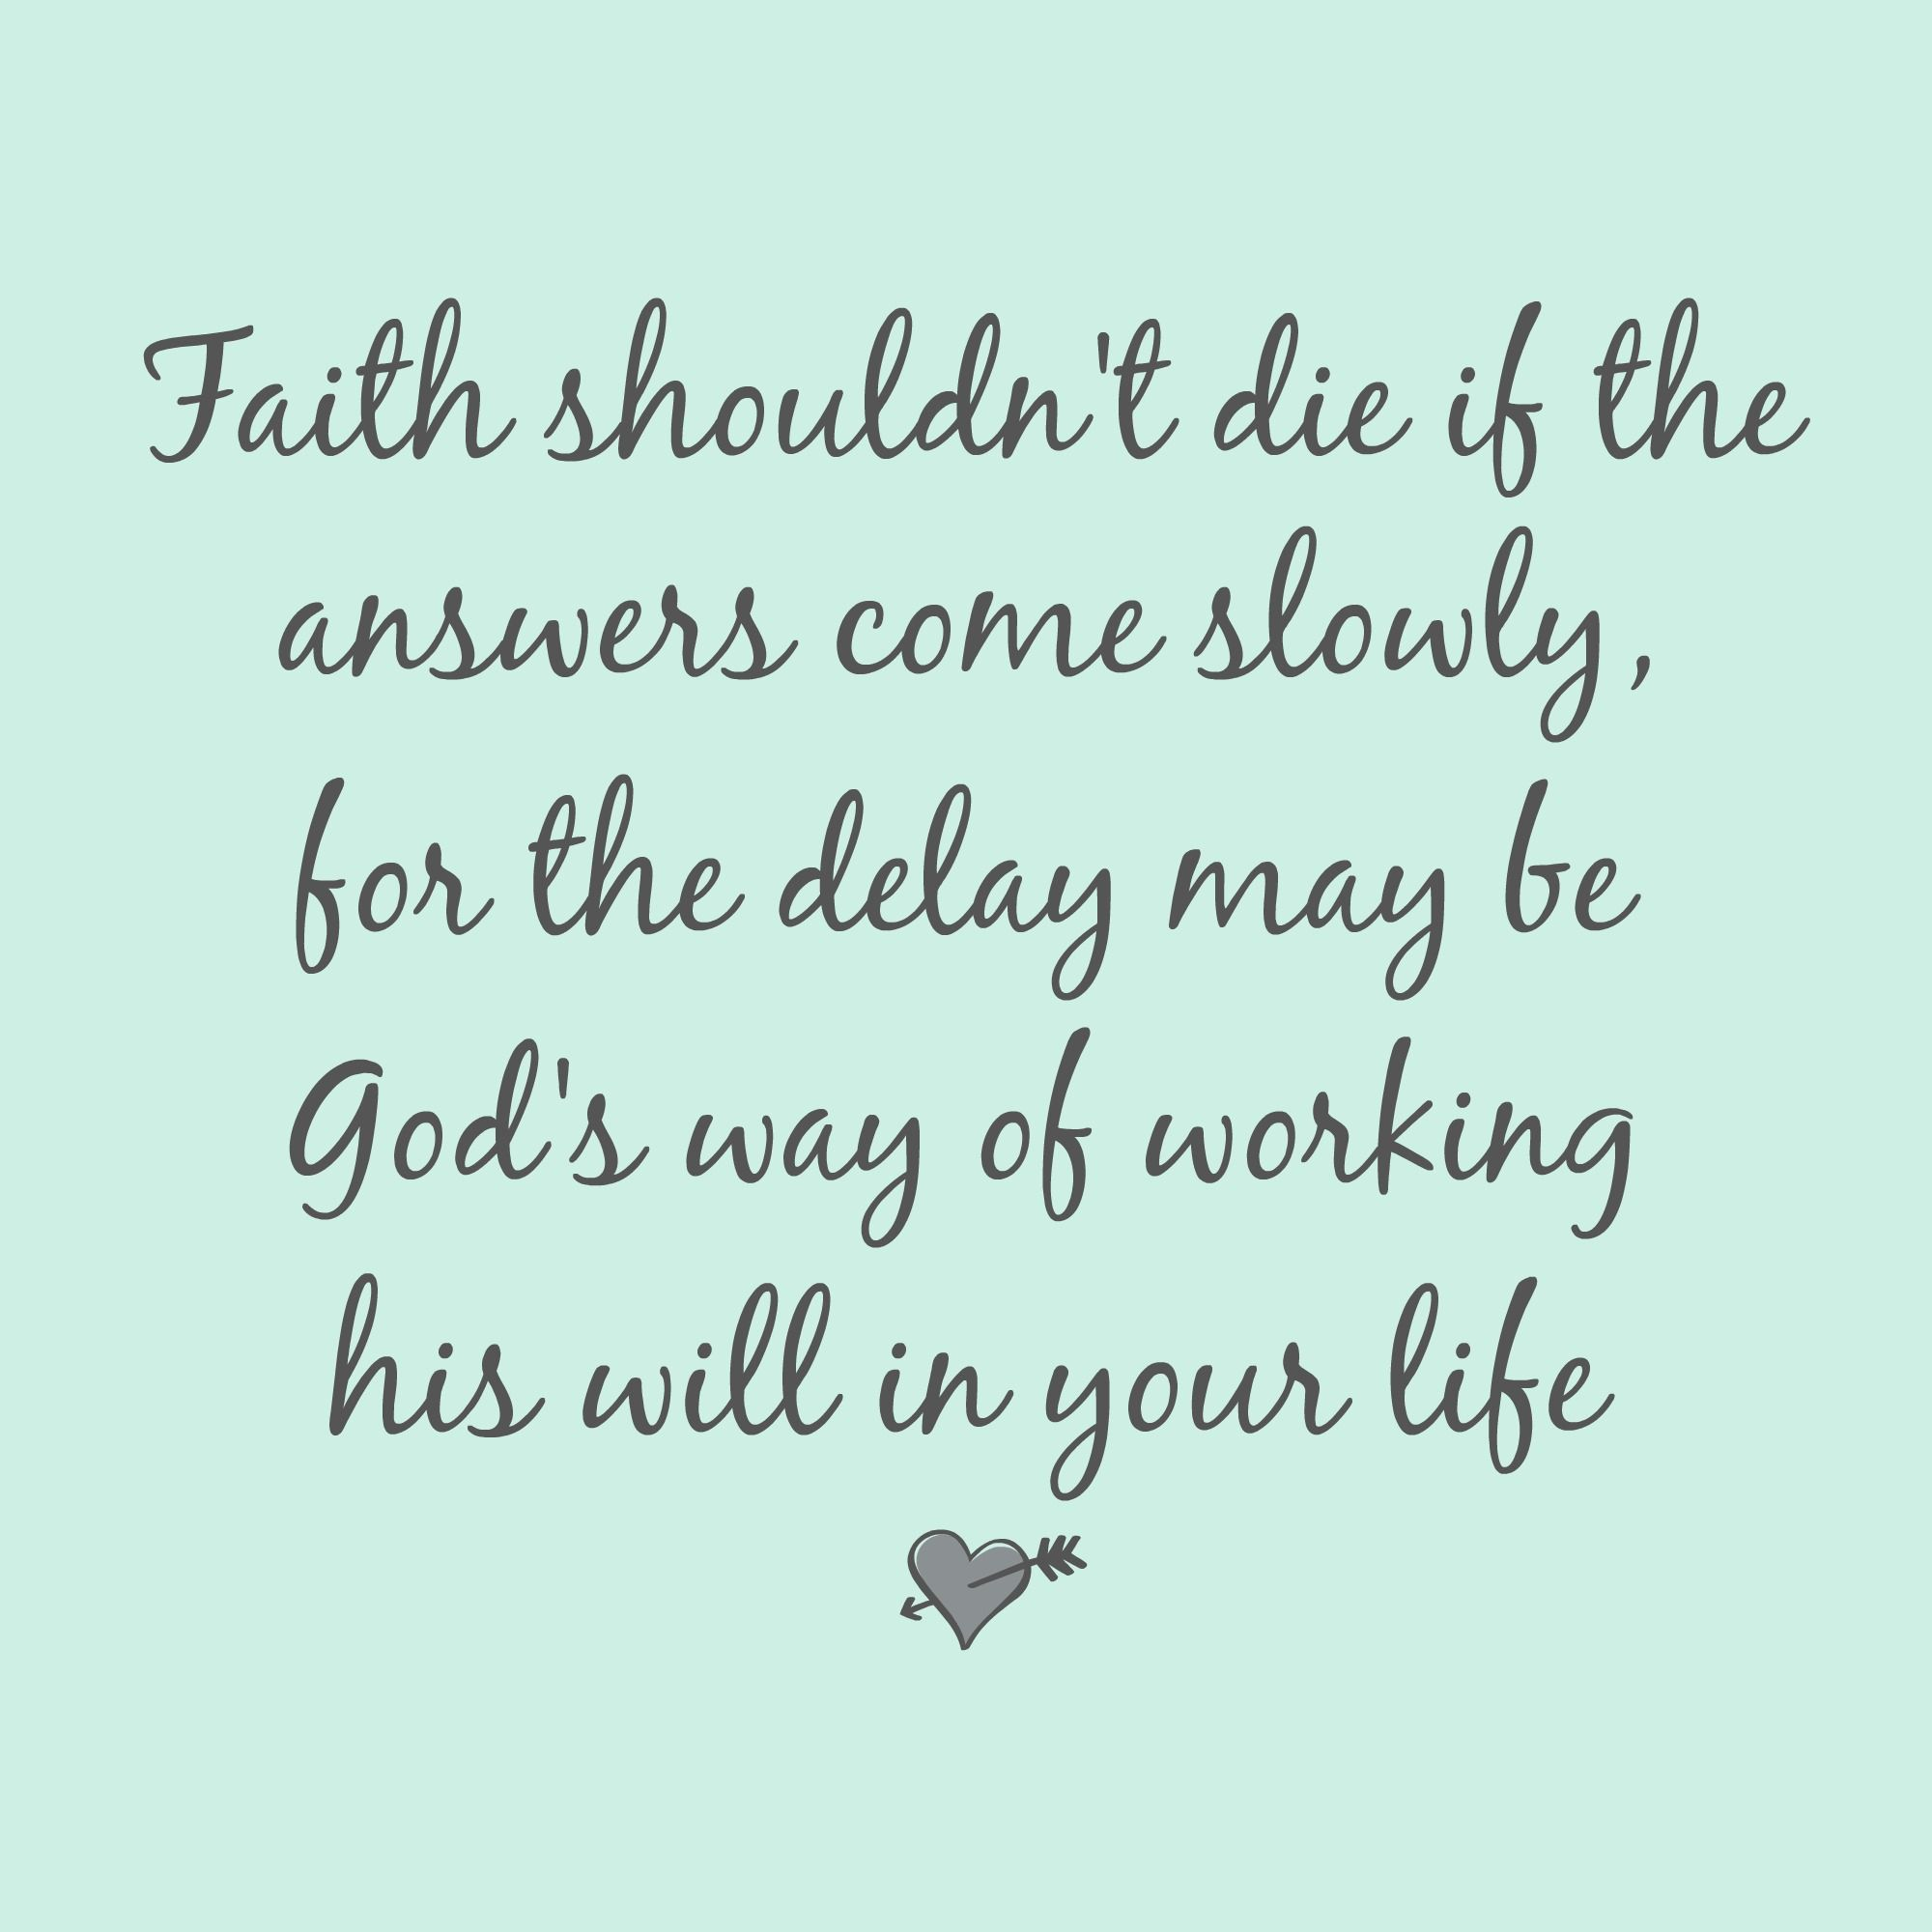 Religious Quotes About Faith Great Inspirational Quotes From Footprints Of Inspirationfaith